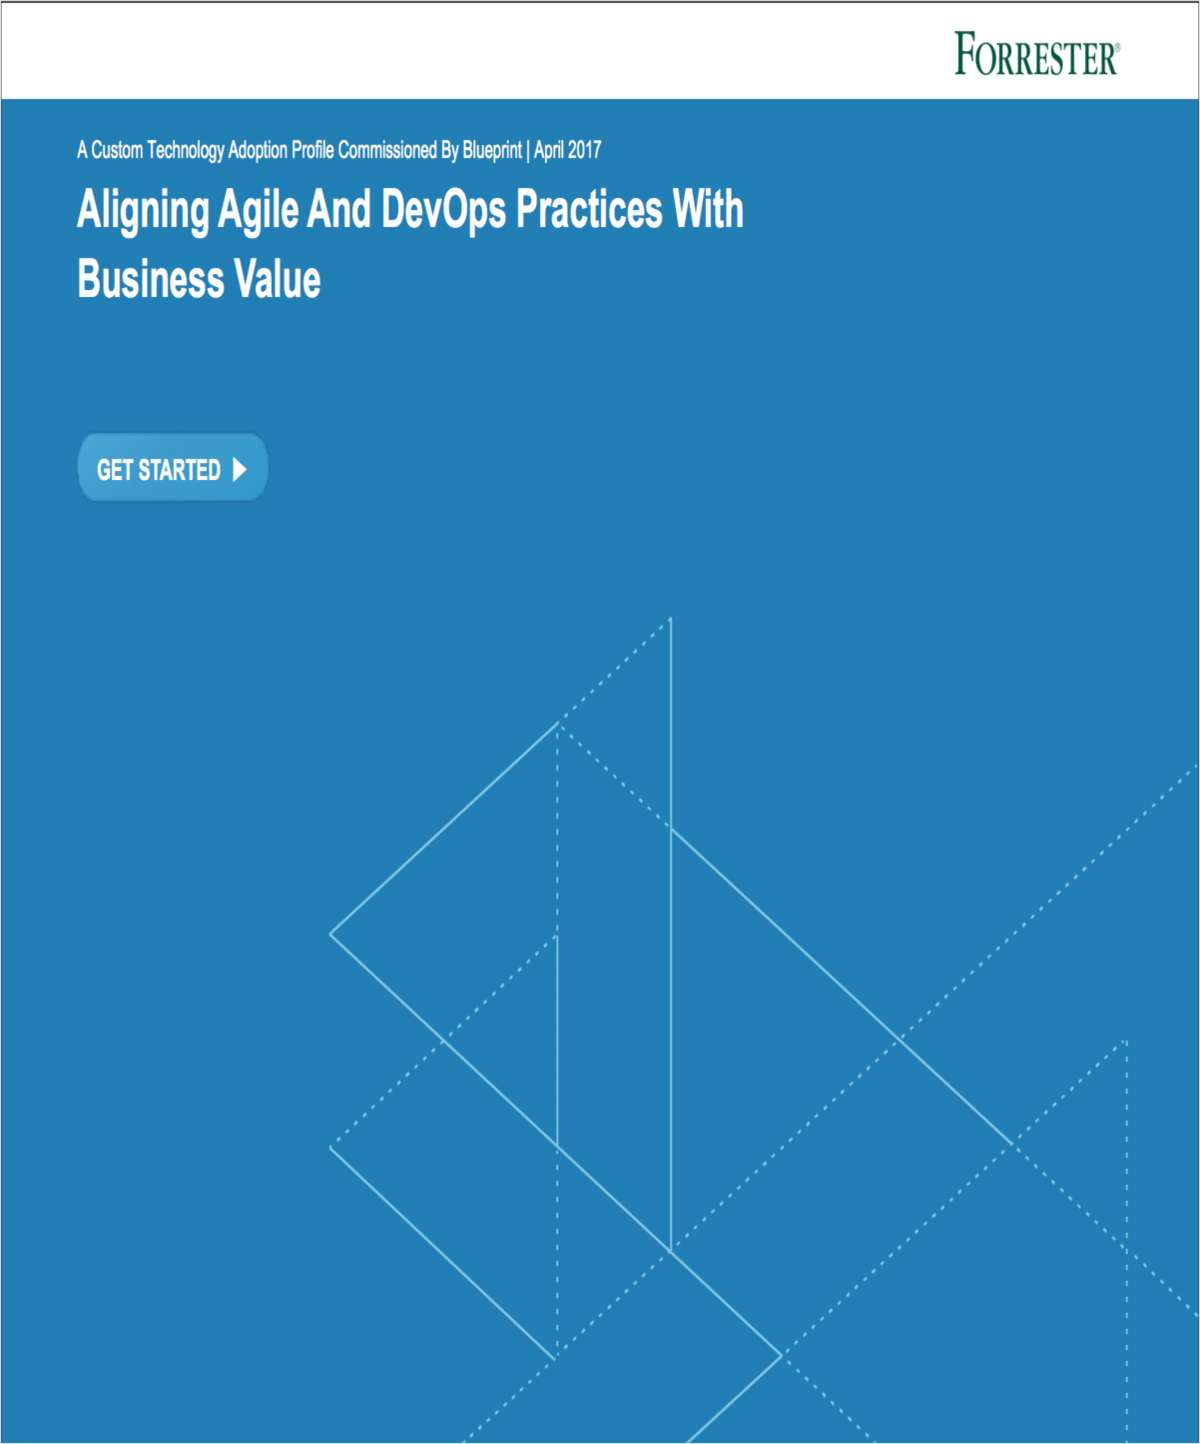 Forrester research aligning agile and devops practices with forrester research aligning agile and devops practices with business value malvernweather Choice Image